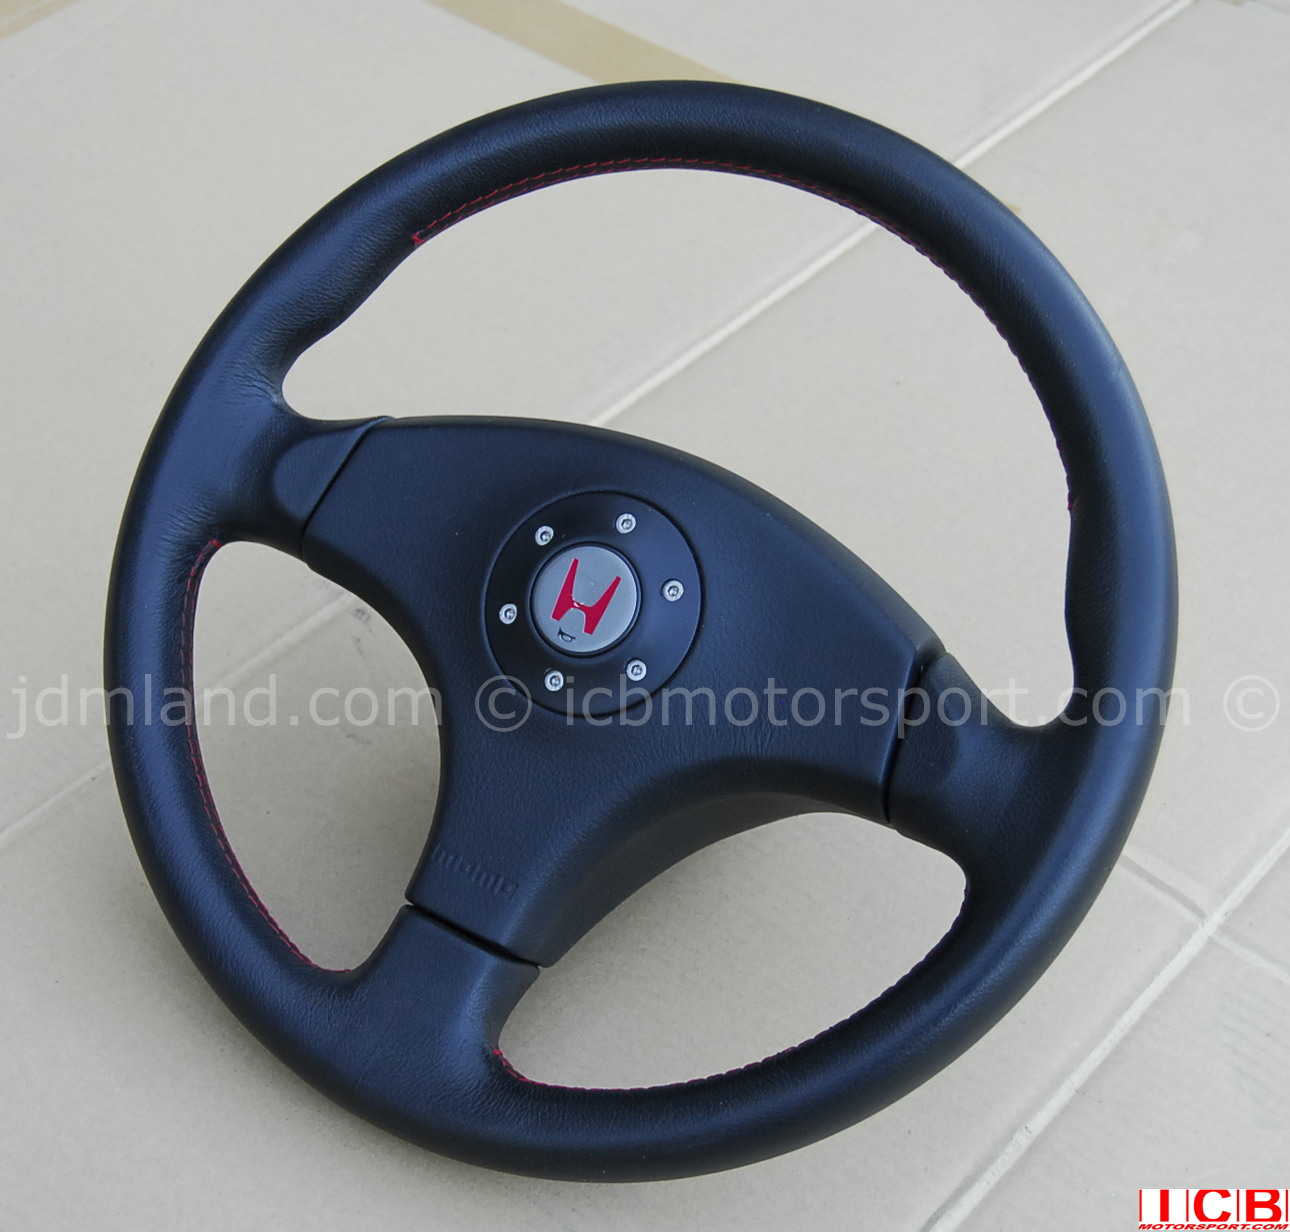 used jdm civic ek9 type r steering wheel non srs rare sold. Black Bedroom Furniture Sets. Home Design Ideas